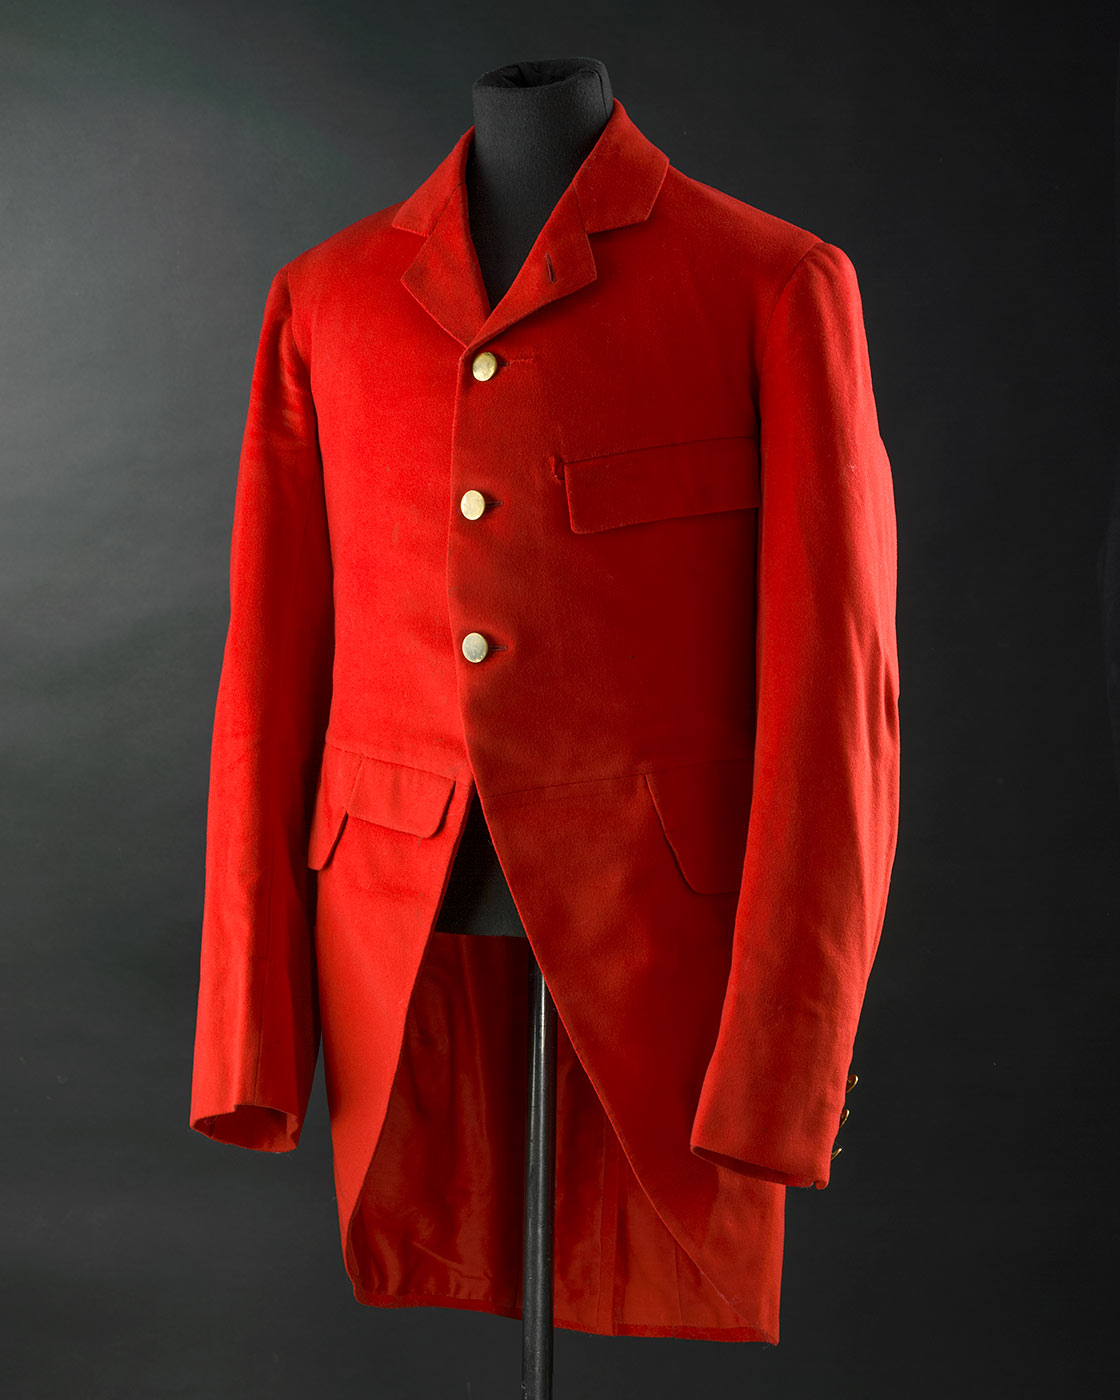 A red wool cut away jacket with tails otherwise known as hunting pinks. It has 3 brass shank buttons at front opening and 3 buttons on each cuff. It is fully lined in red cotton. The sleeves are lined in white cotton with blue stripe. The jacket has machine quilted underarm lining and a back vent with 2 brass buttons at top. It has four pockets on front with flaps. - click to view larger image